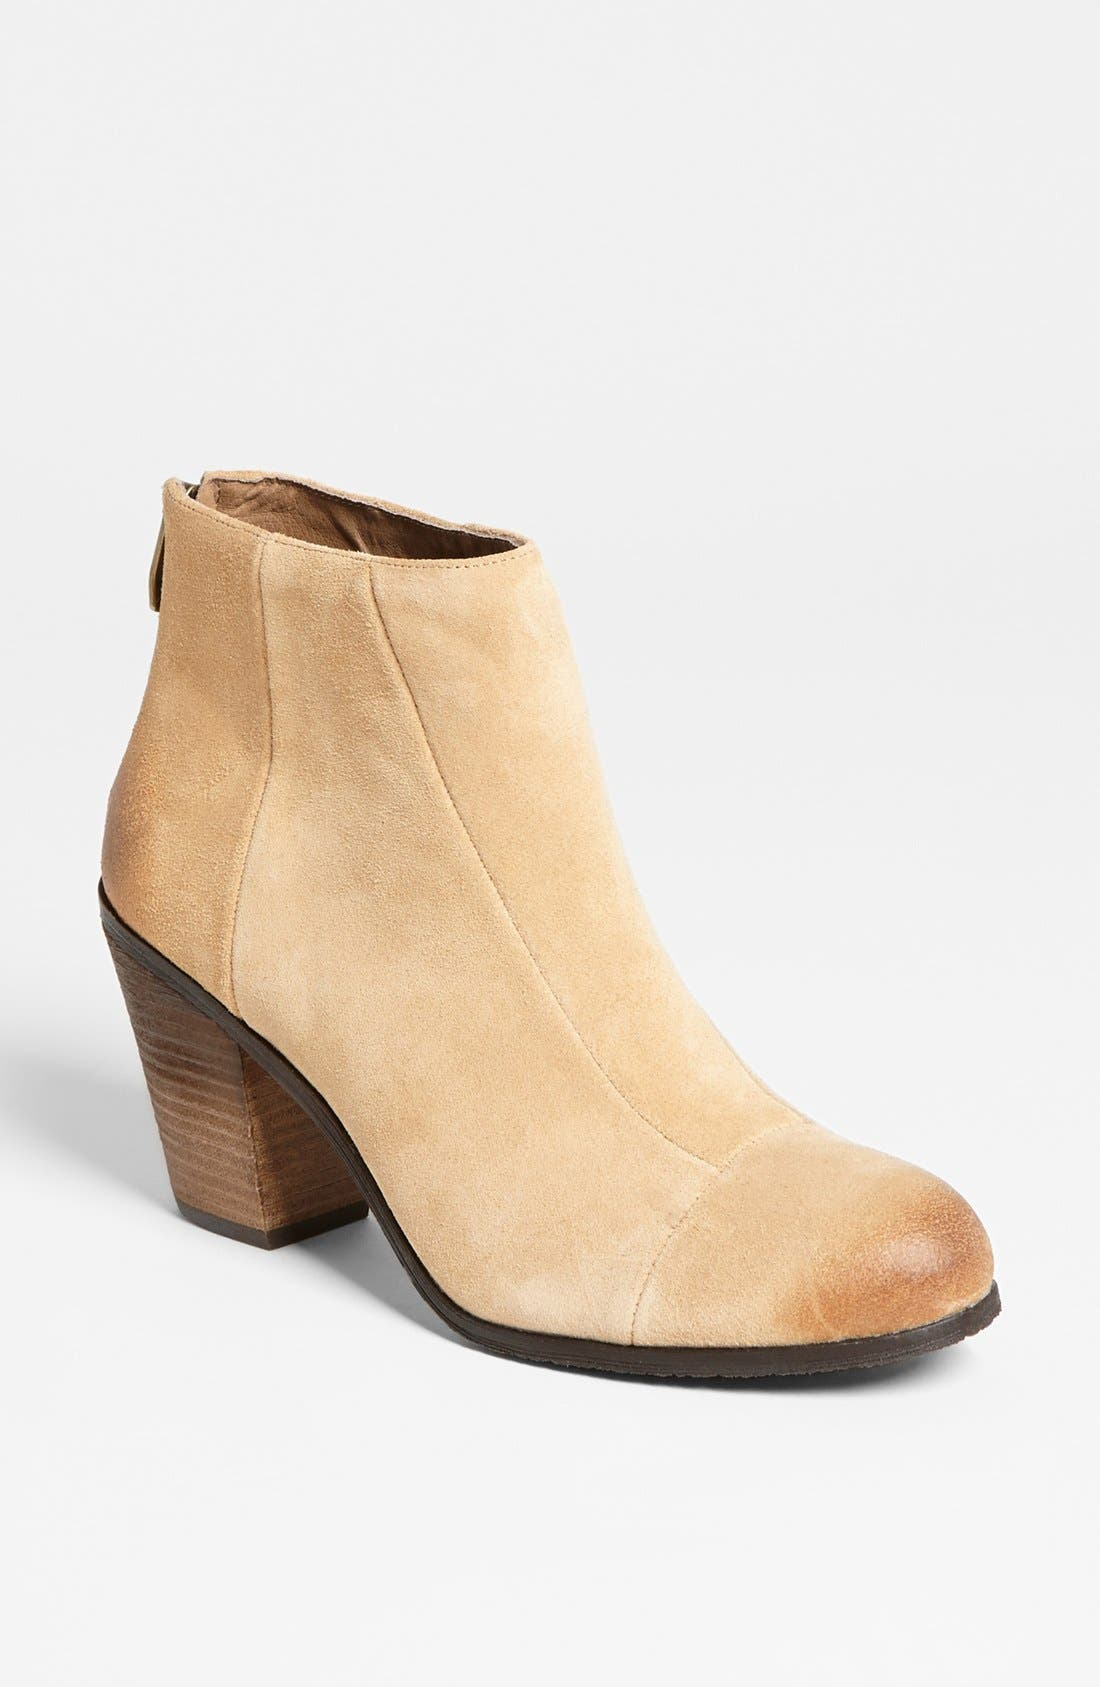 Alternate Image 1 Selected - Vince Camuto 'Grayson' Bootie